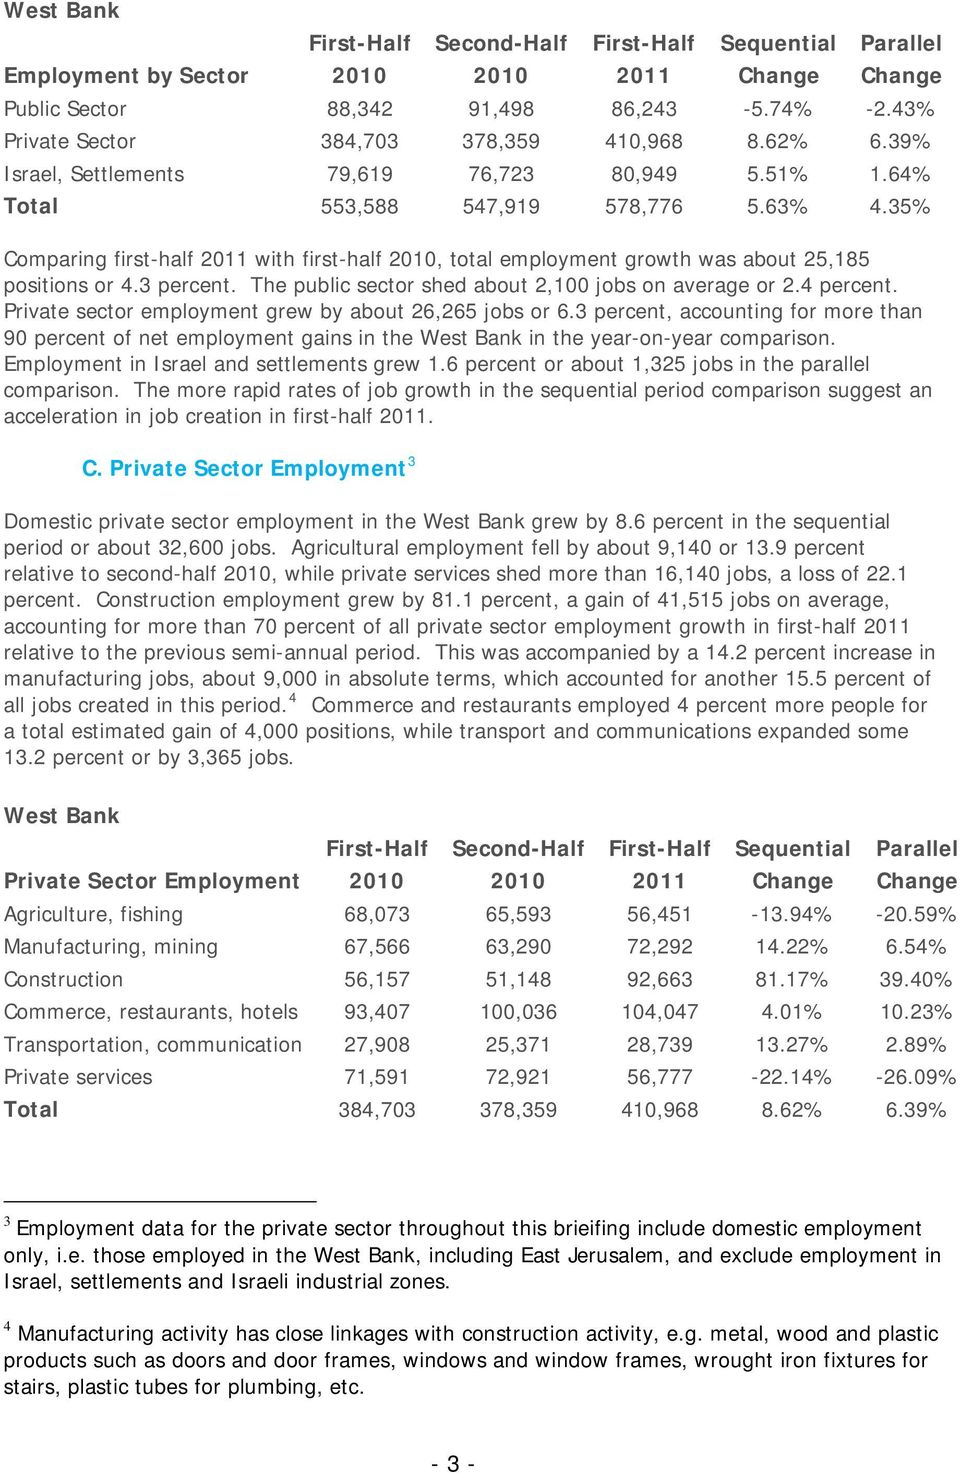 35% Comparing first-half 2011 with first-half 2010, total employment growth was about 25,185 positions or 4.3 percent. The public sector shed about 2,100 jobs on average or 2.4 percent.